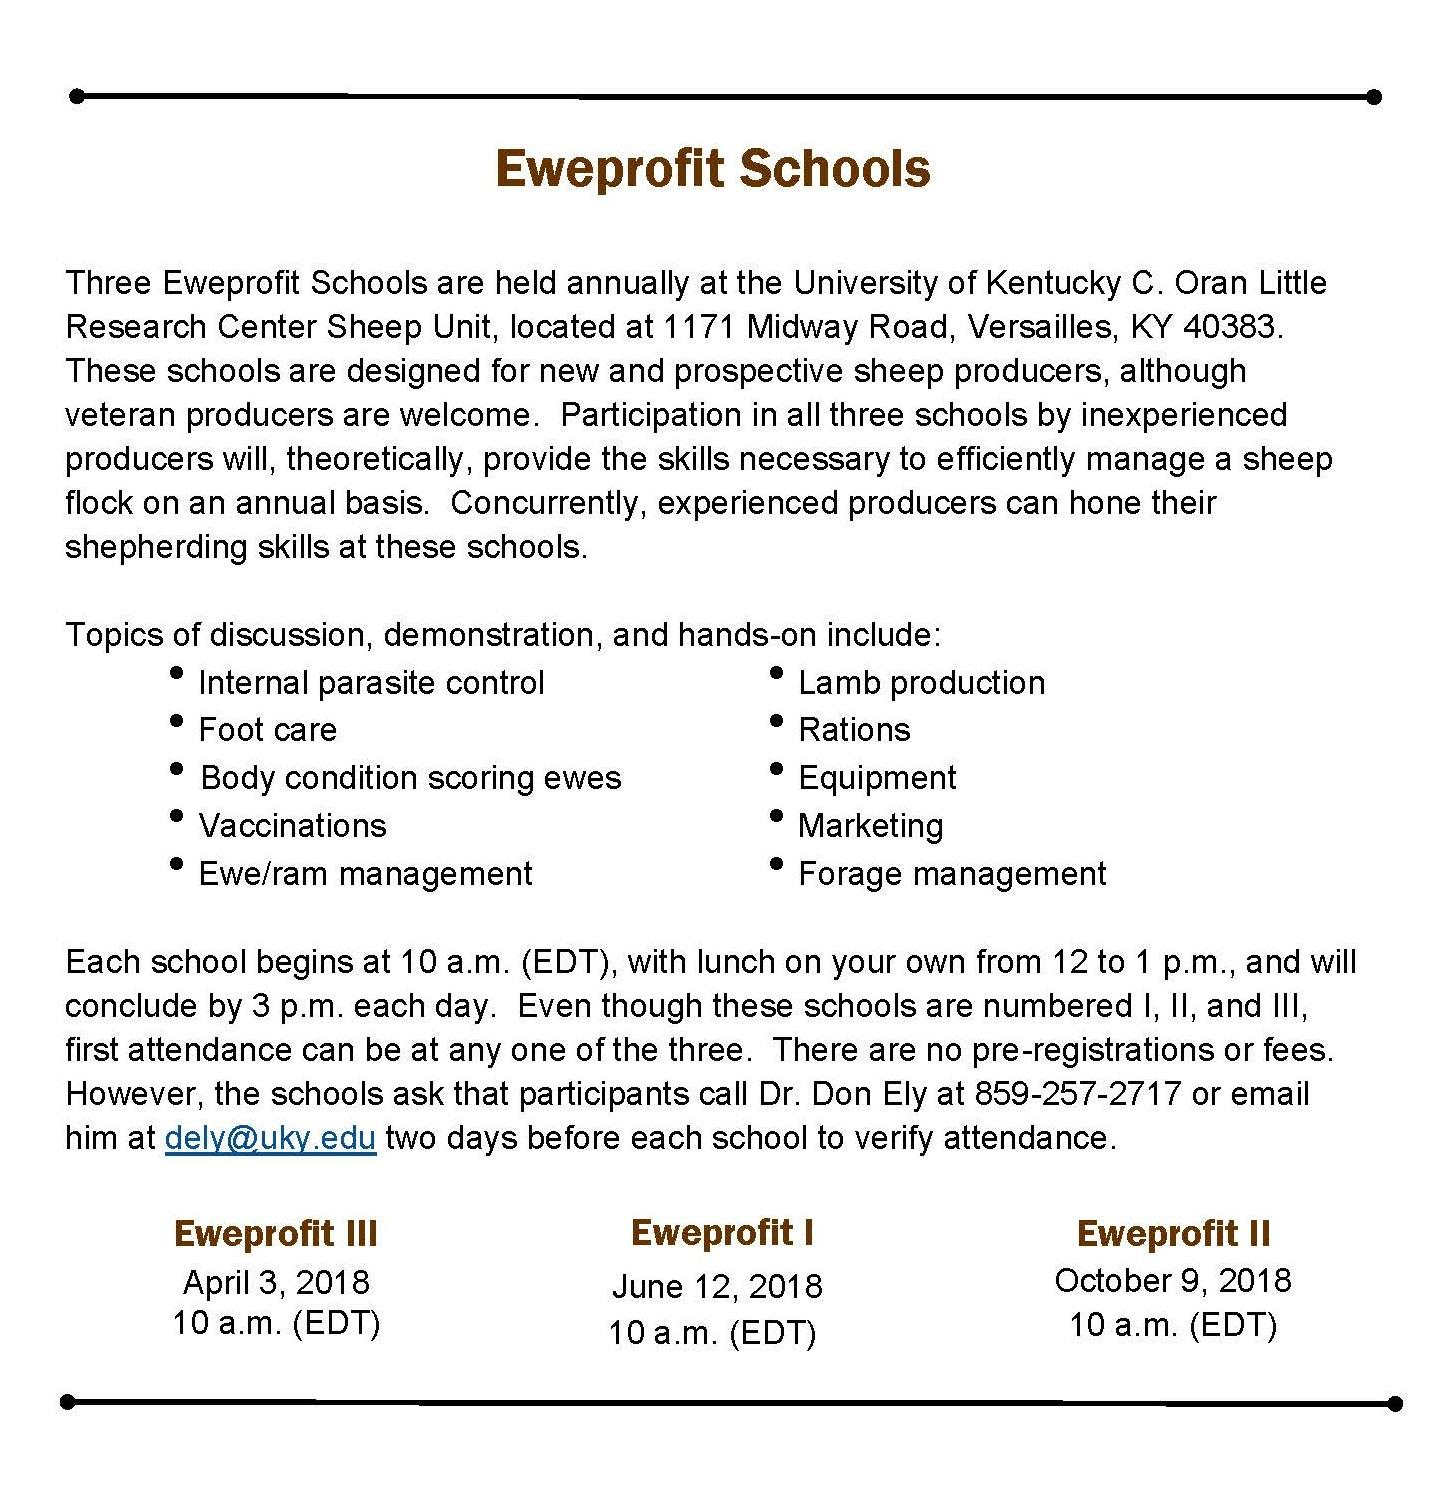 Eweprofit school general information